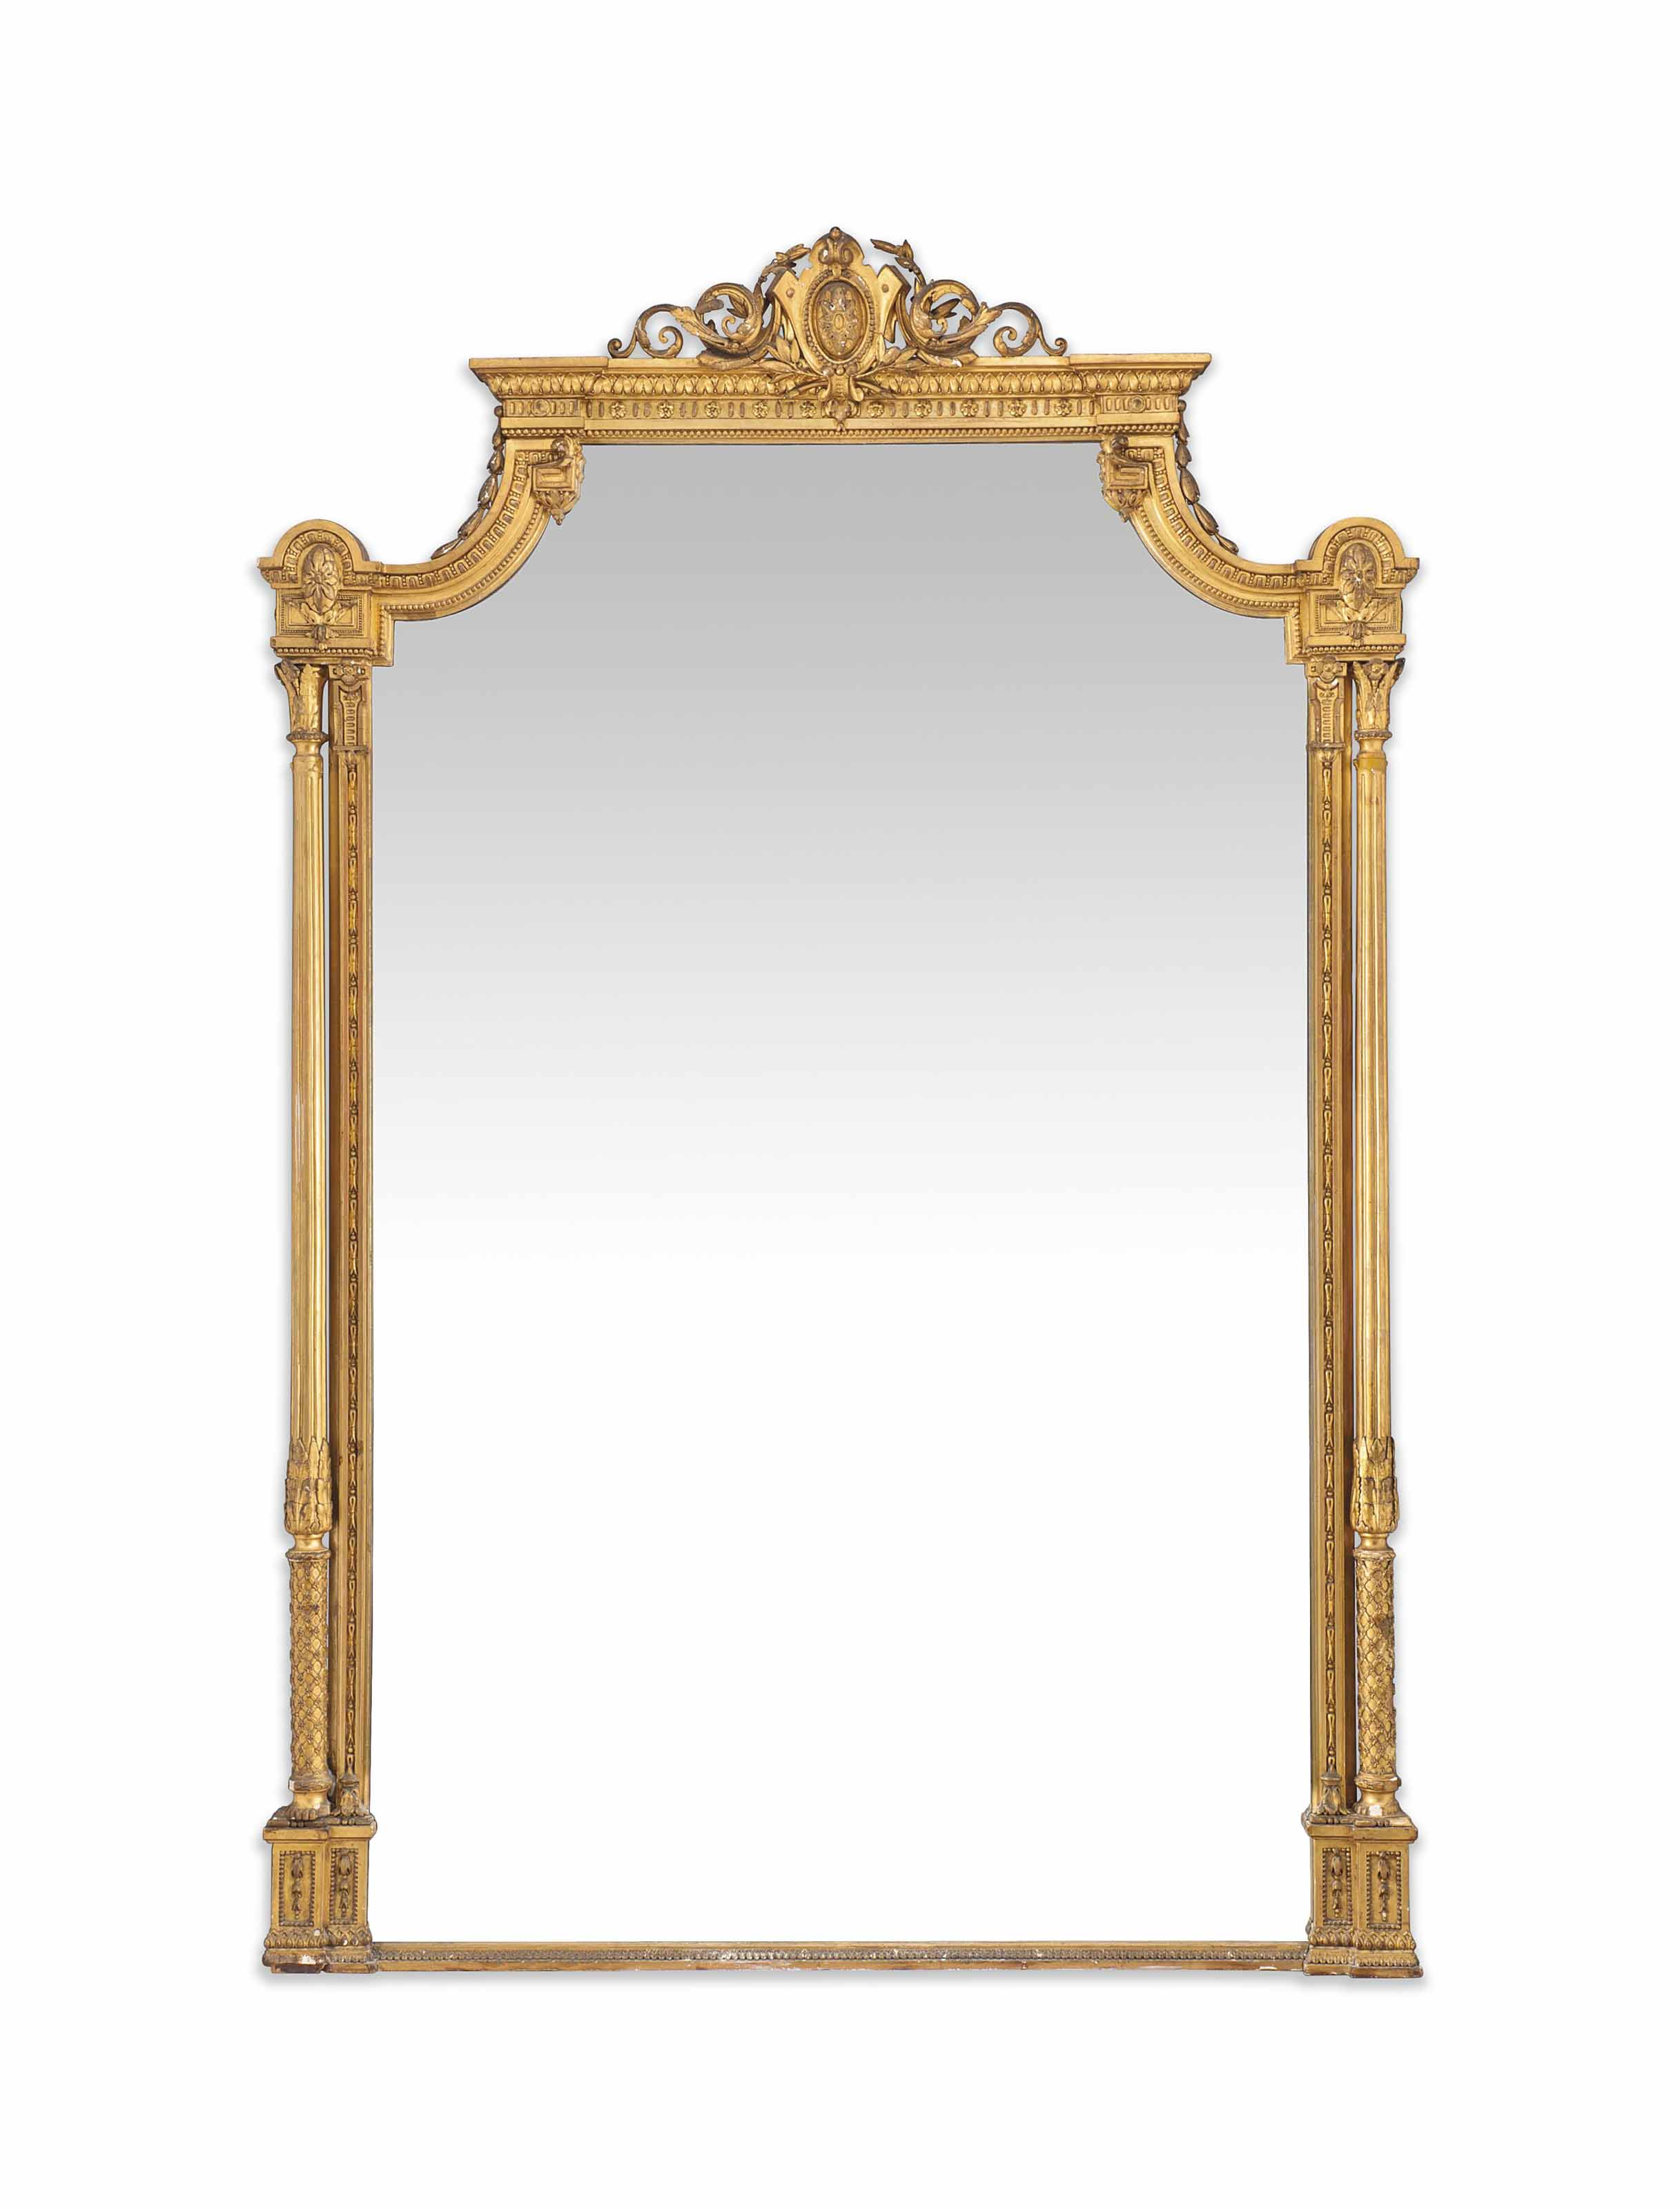 A LARGE FRENCH GILTWOOD AND COMPOSITION OVERMANTEL MIRROR